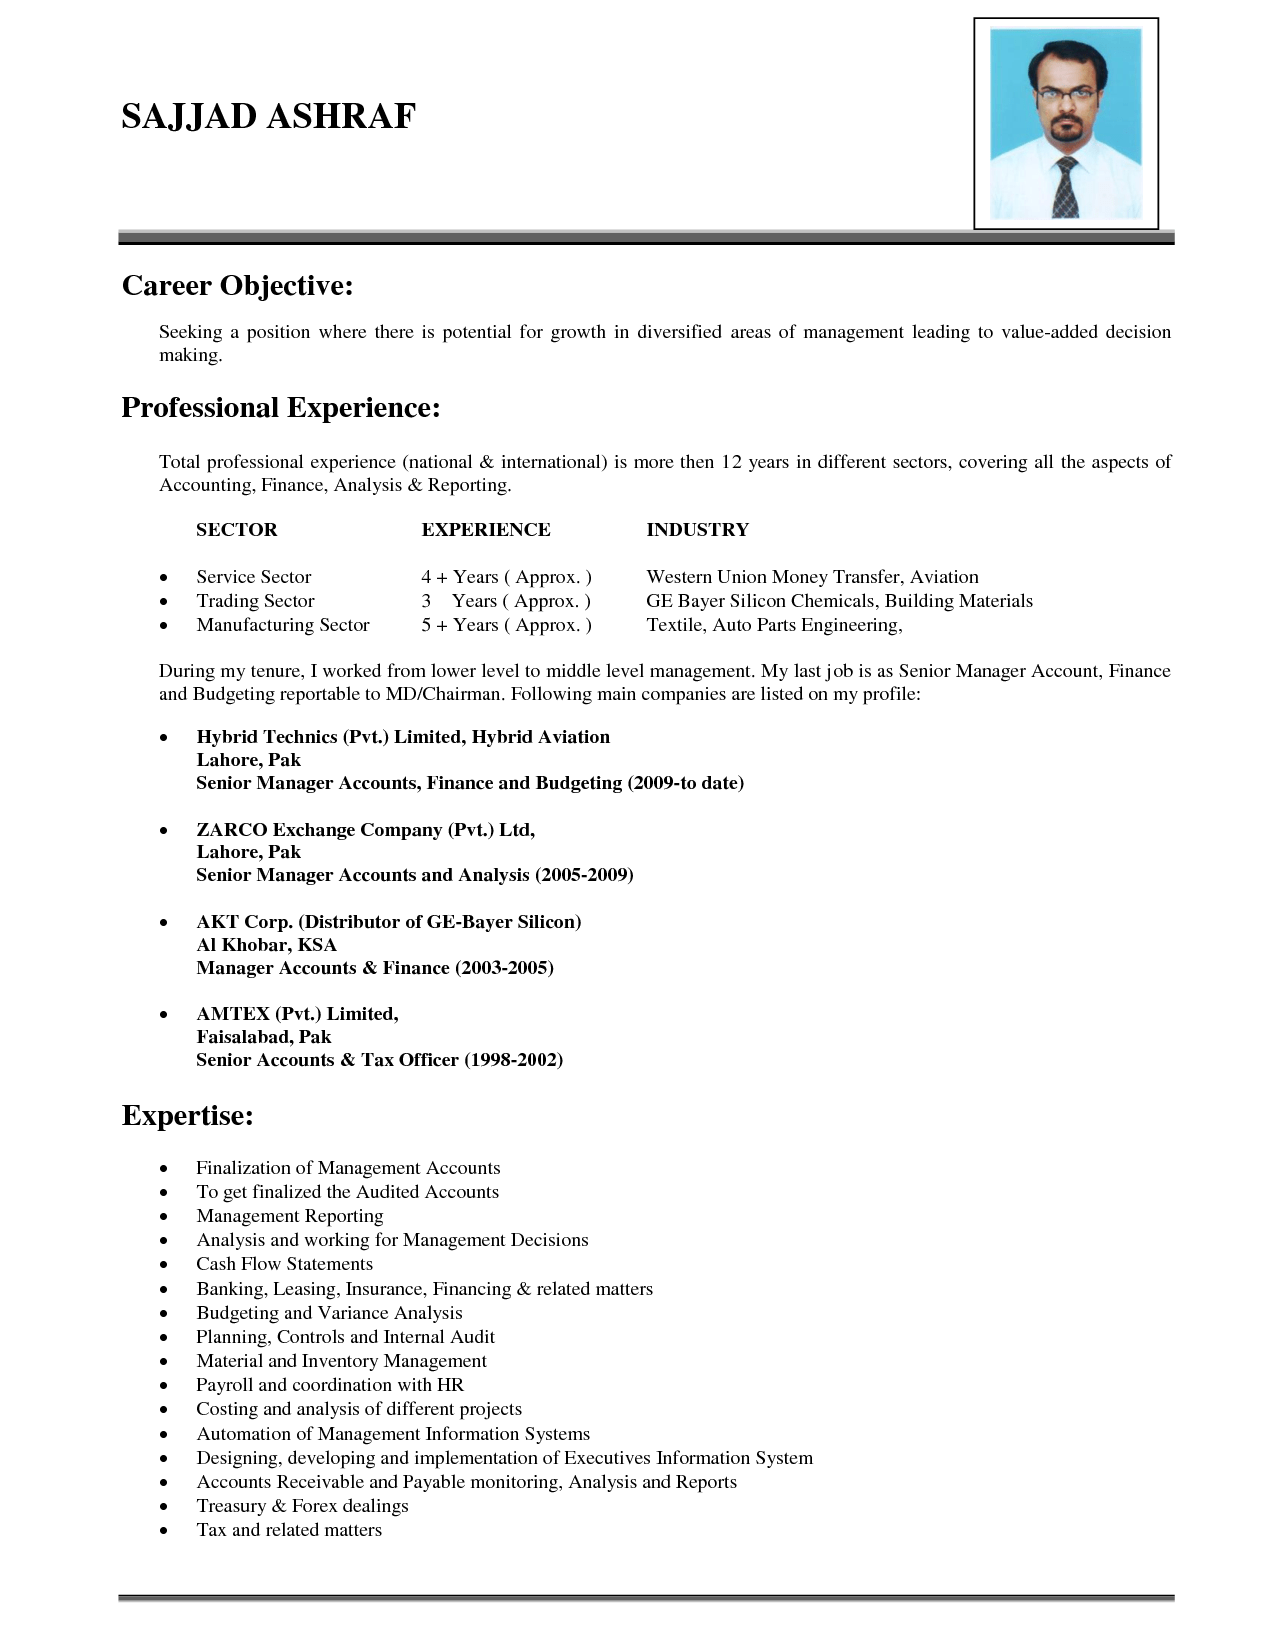 How To Write A Career Objective On A Resume Resume Genius. Career ...